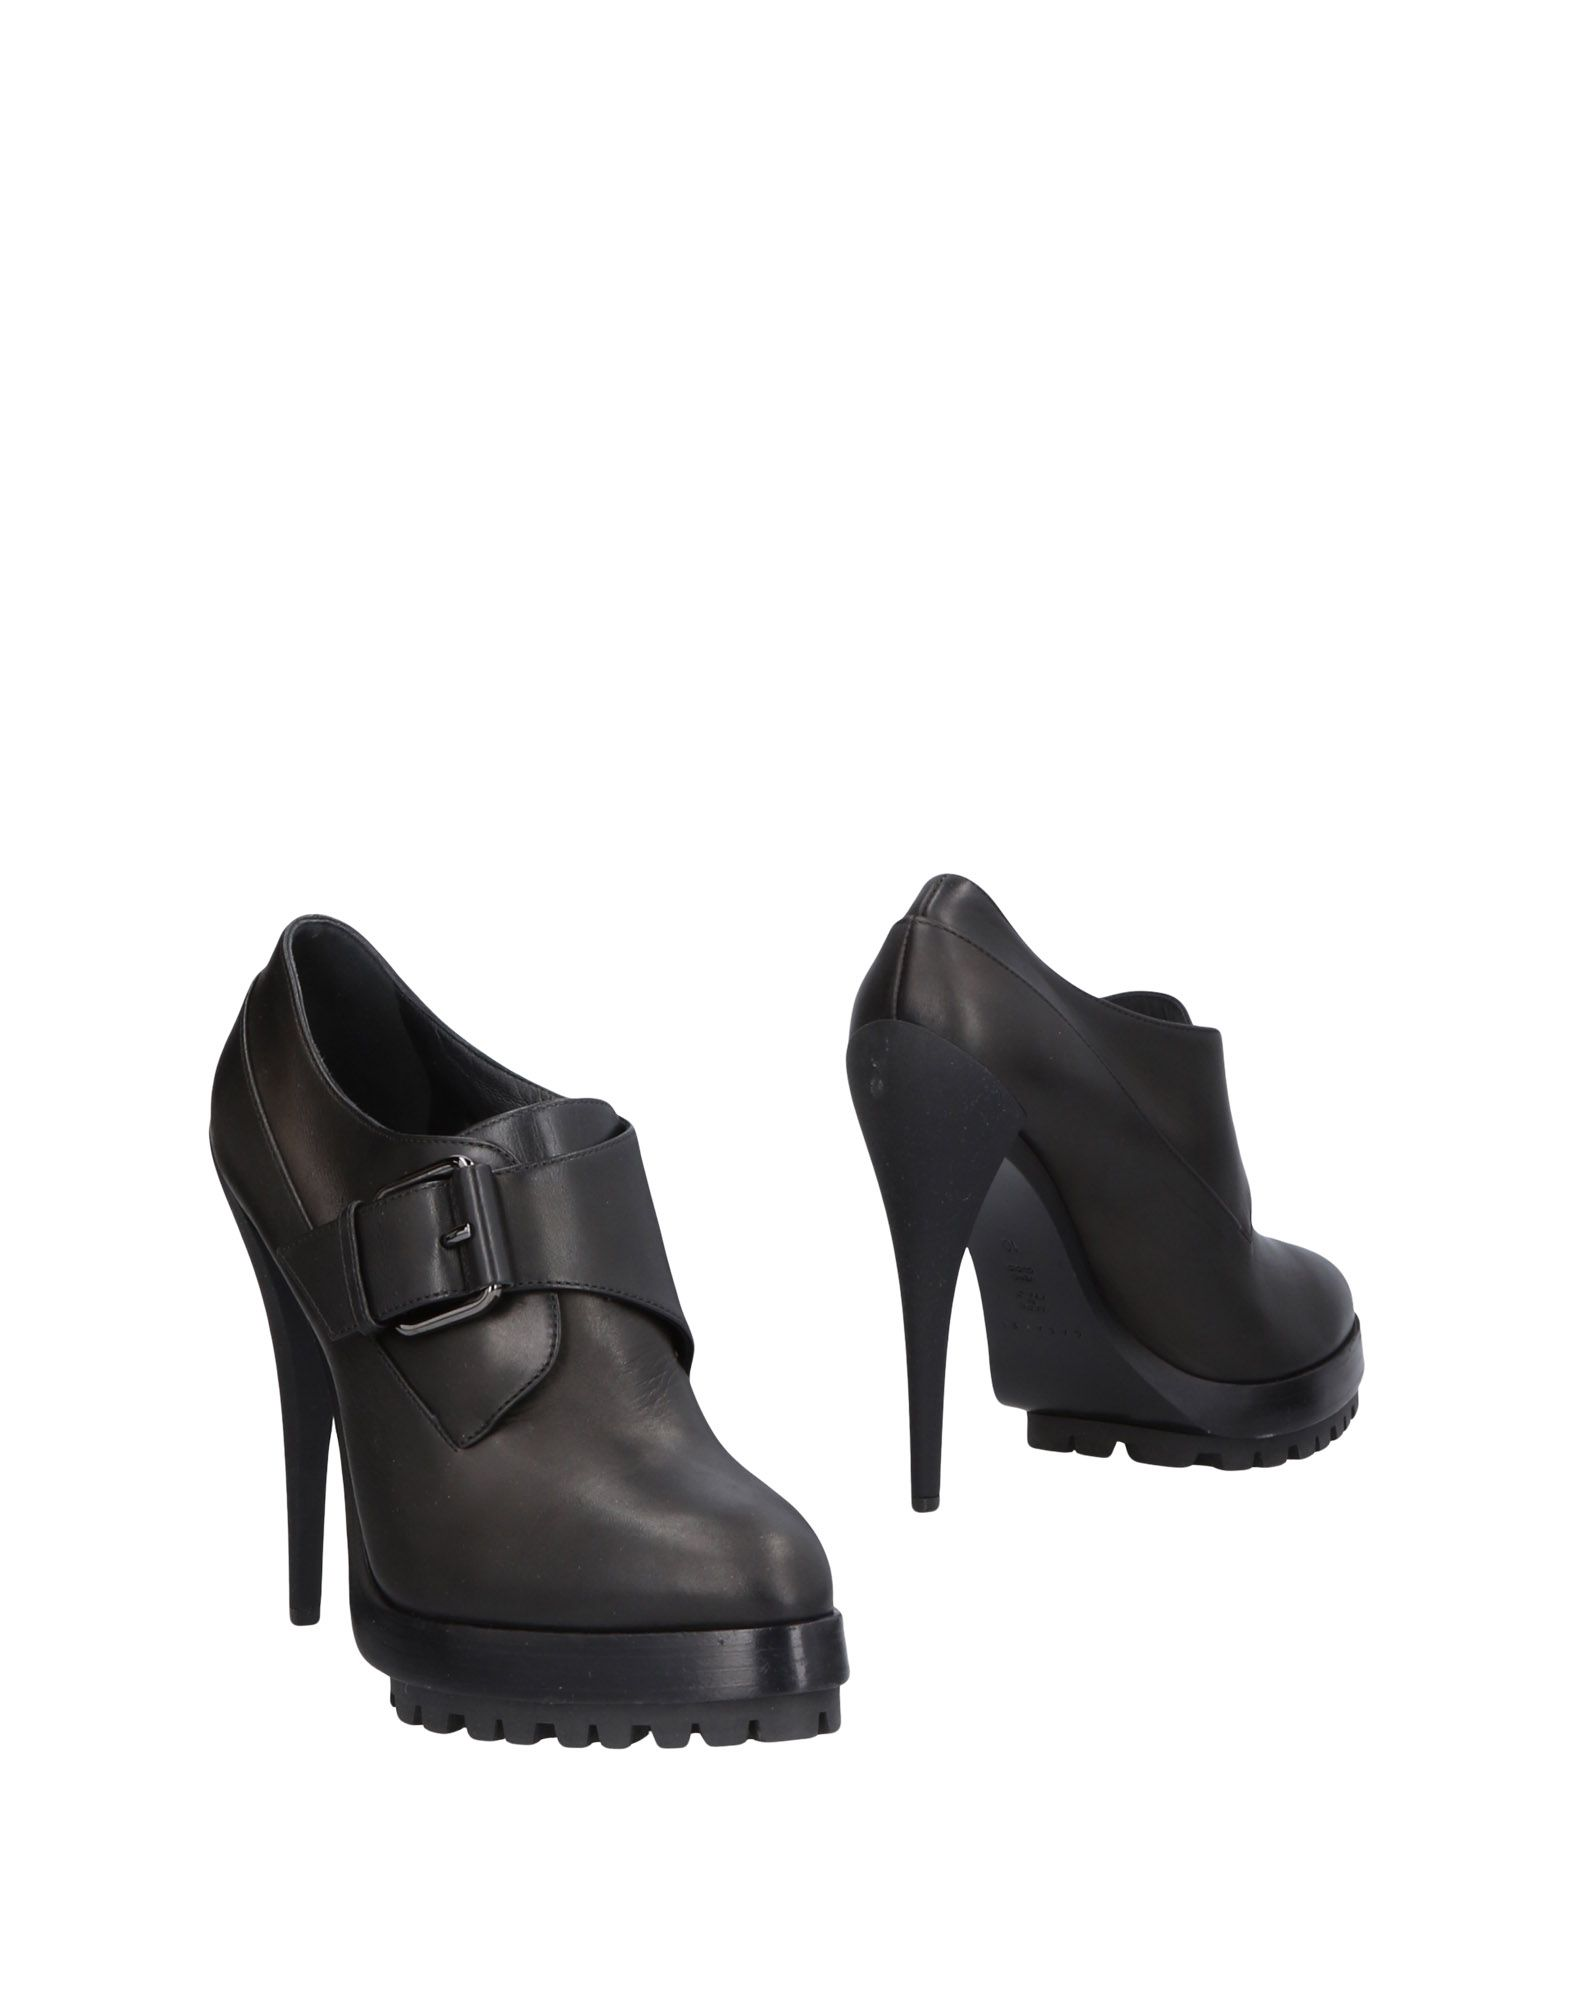 Bottine Casadei Femme - Bottines Casadei Noir Confortable et belle